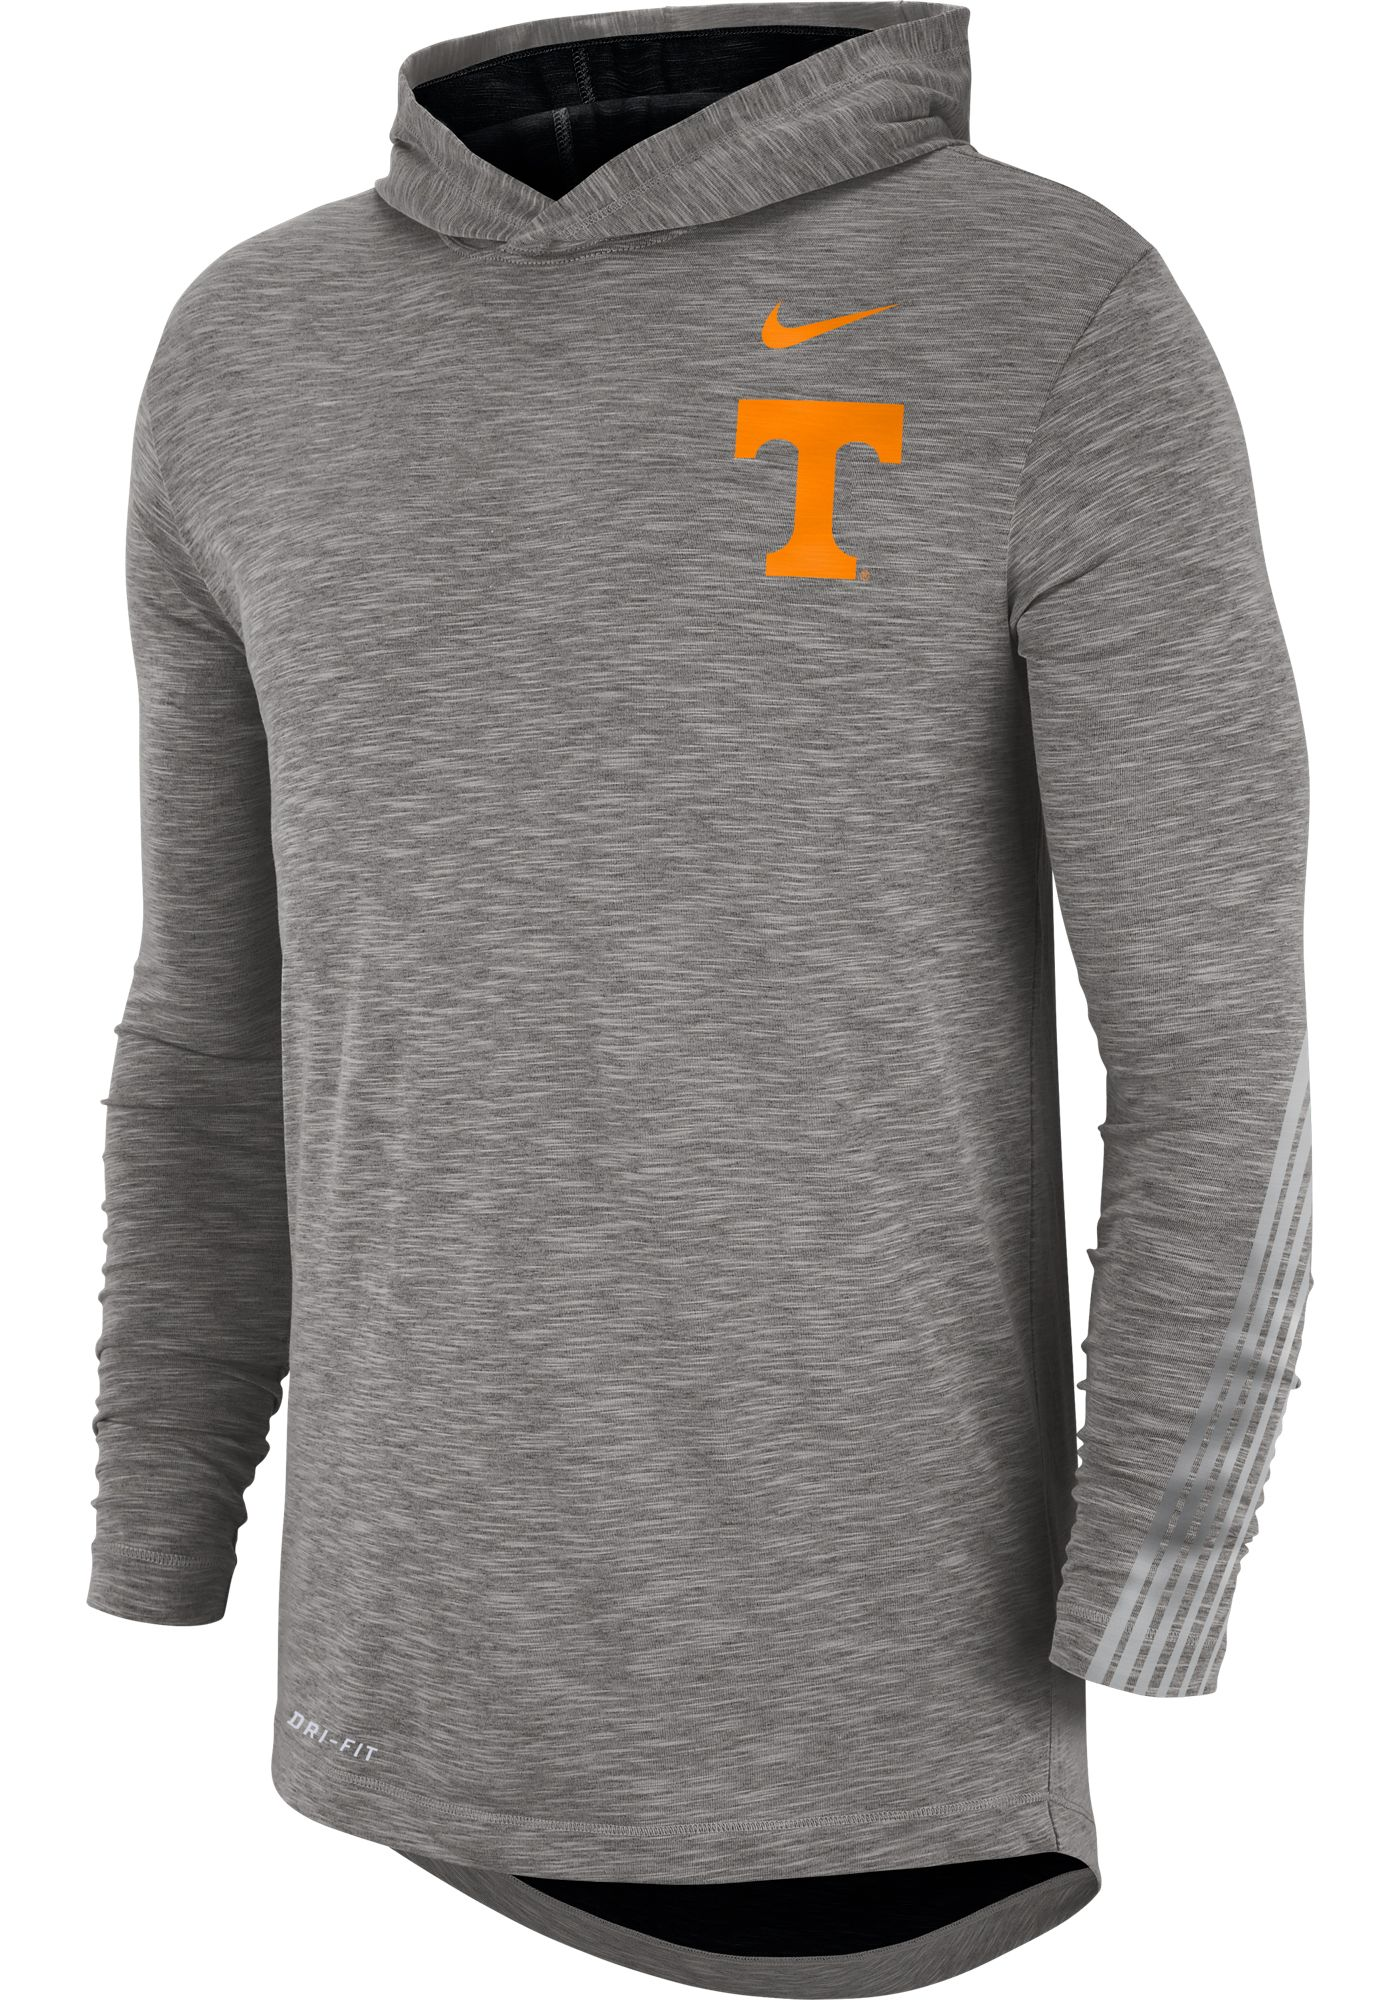 Nike Men's Tennessee Volunteers Grey Cotton Long Sleeve Hoodie T-Shirt